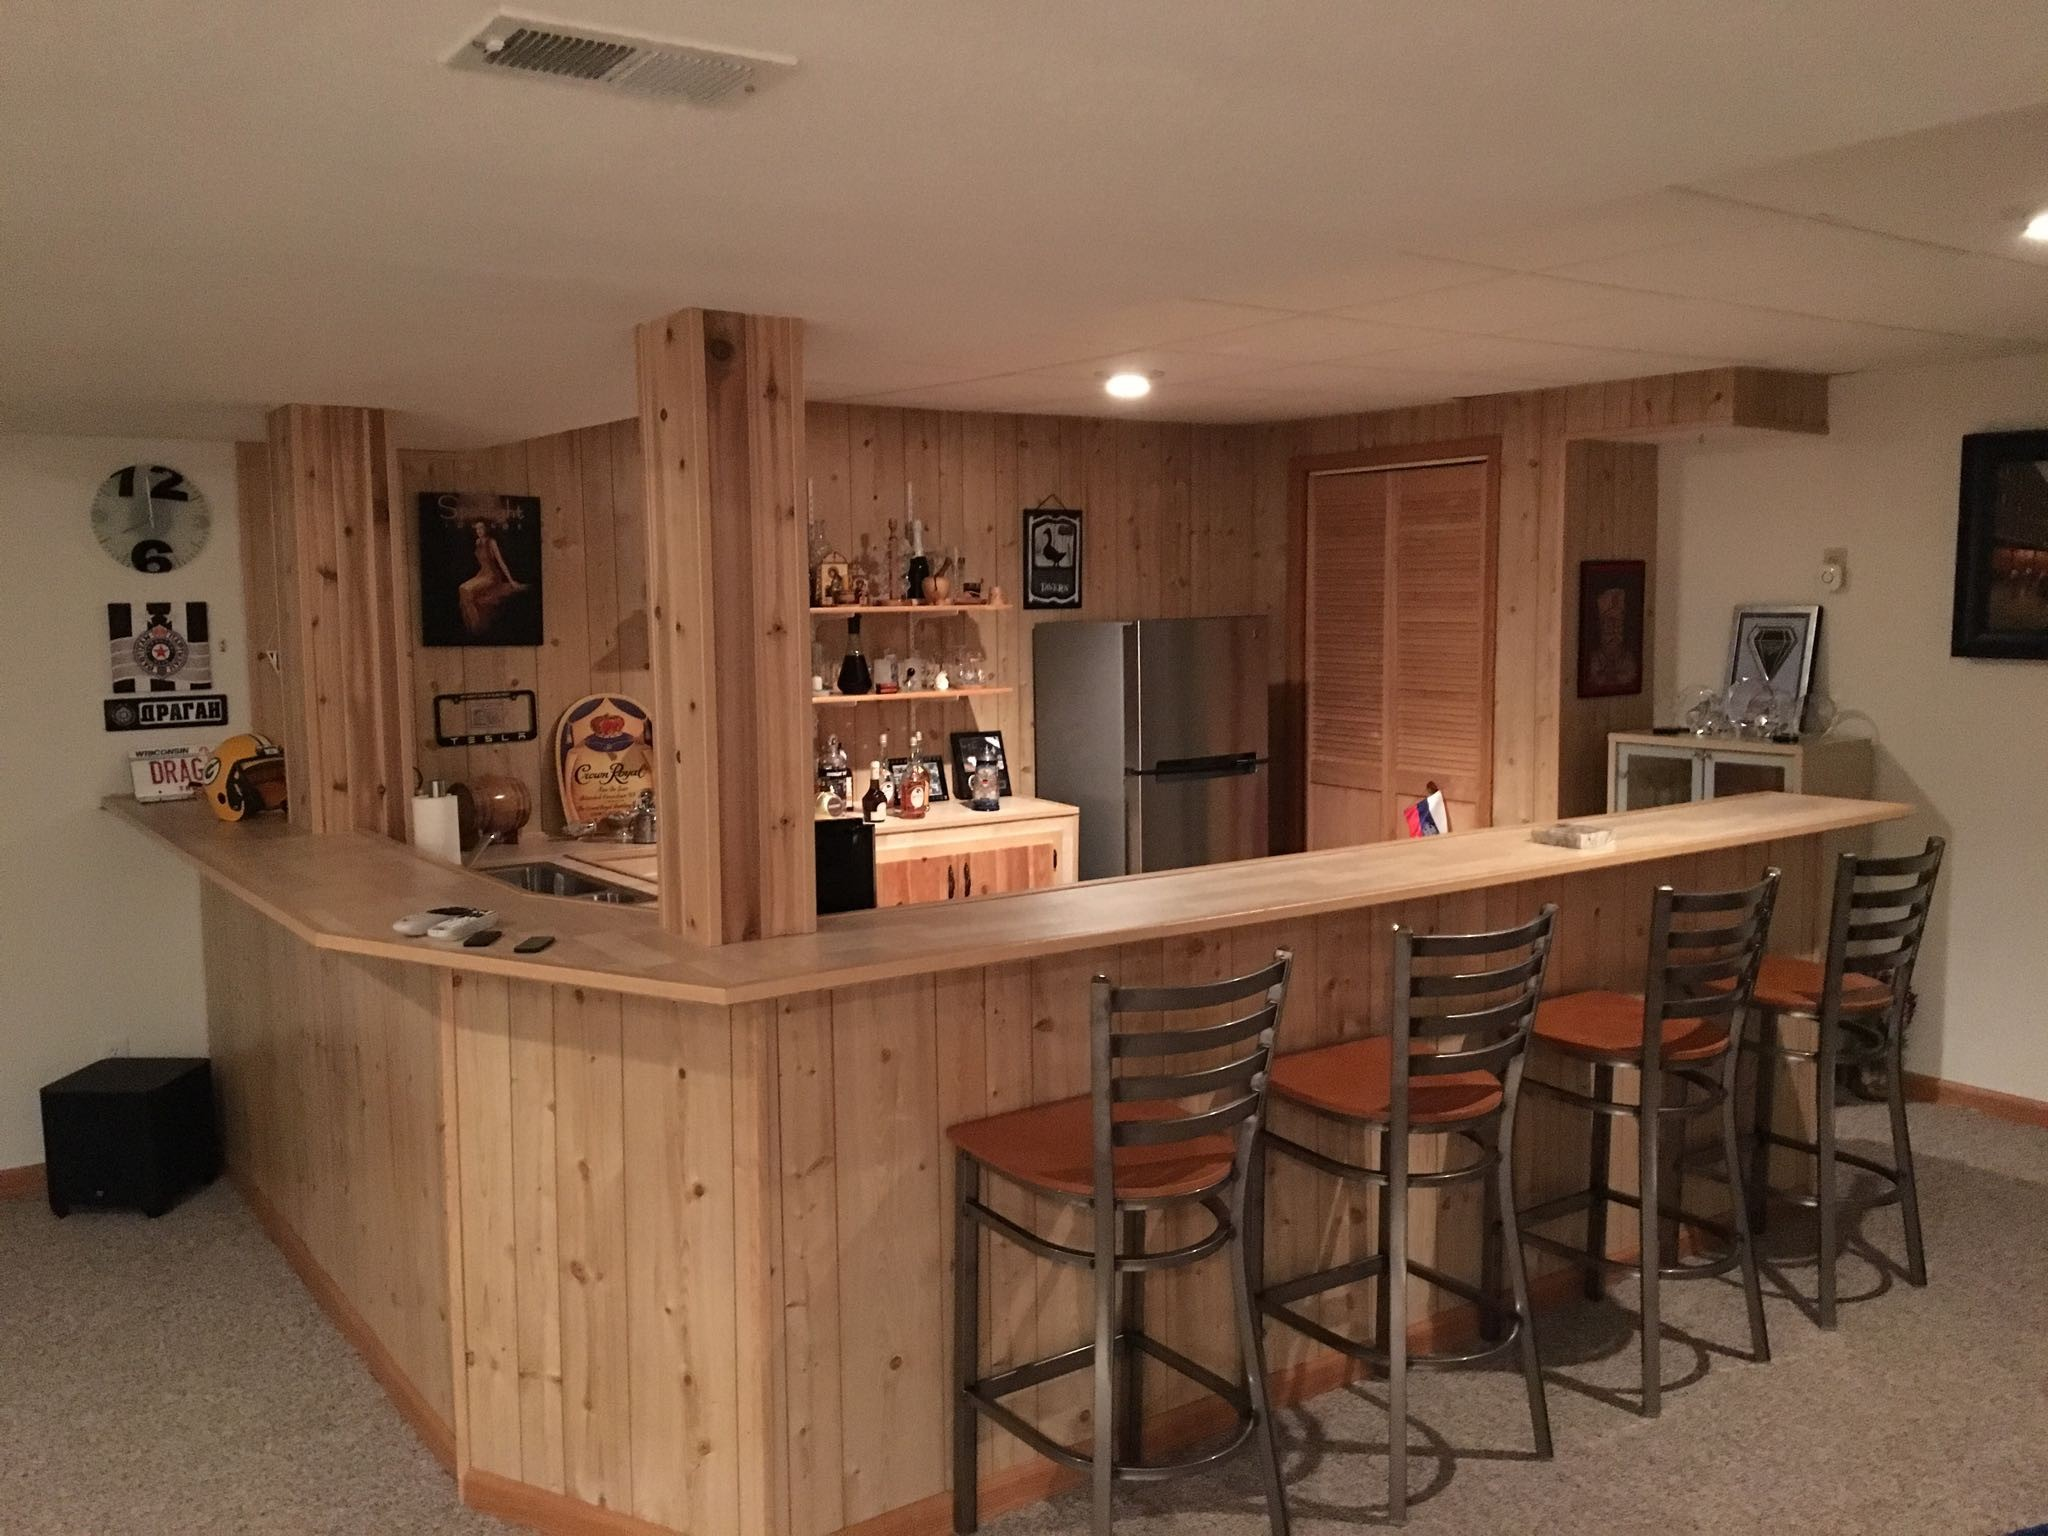 countertop bar setup  Would granite countertops look out of place with our ..